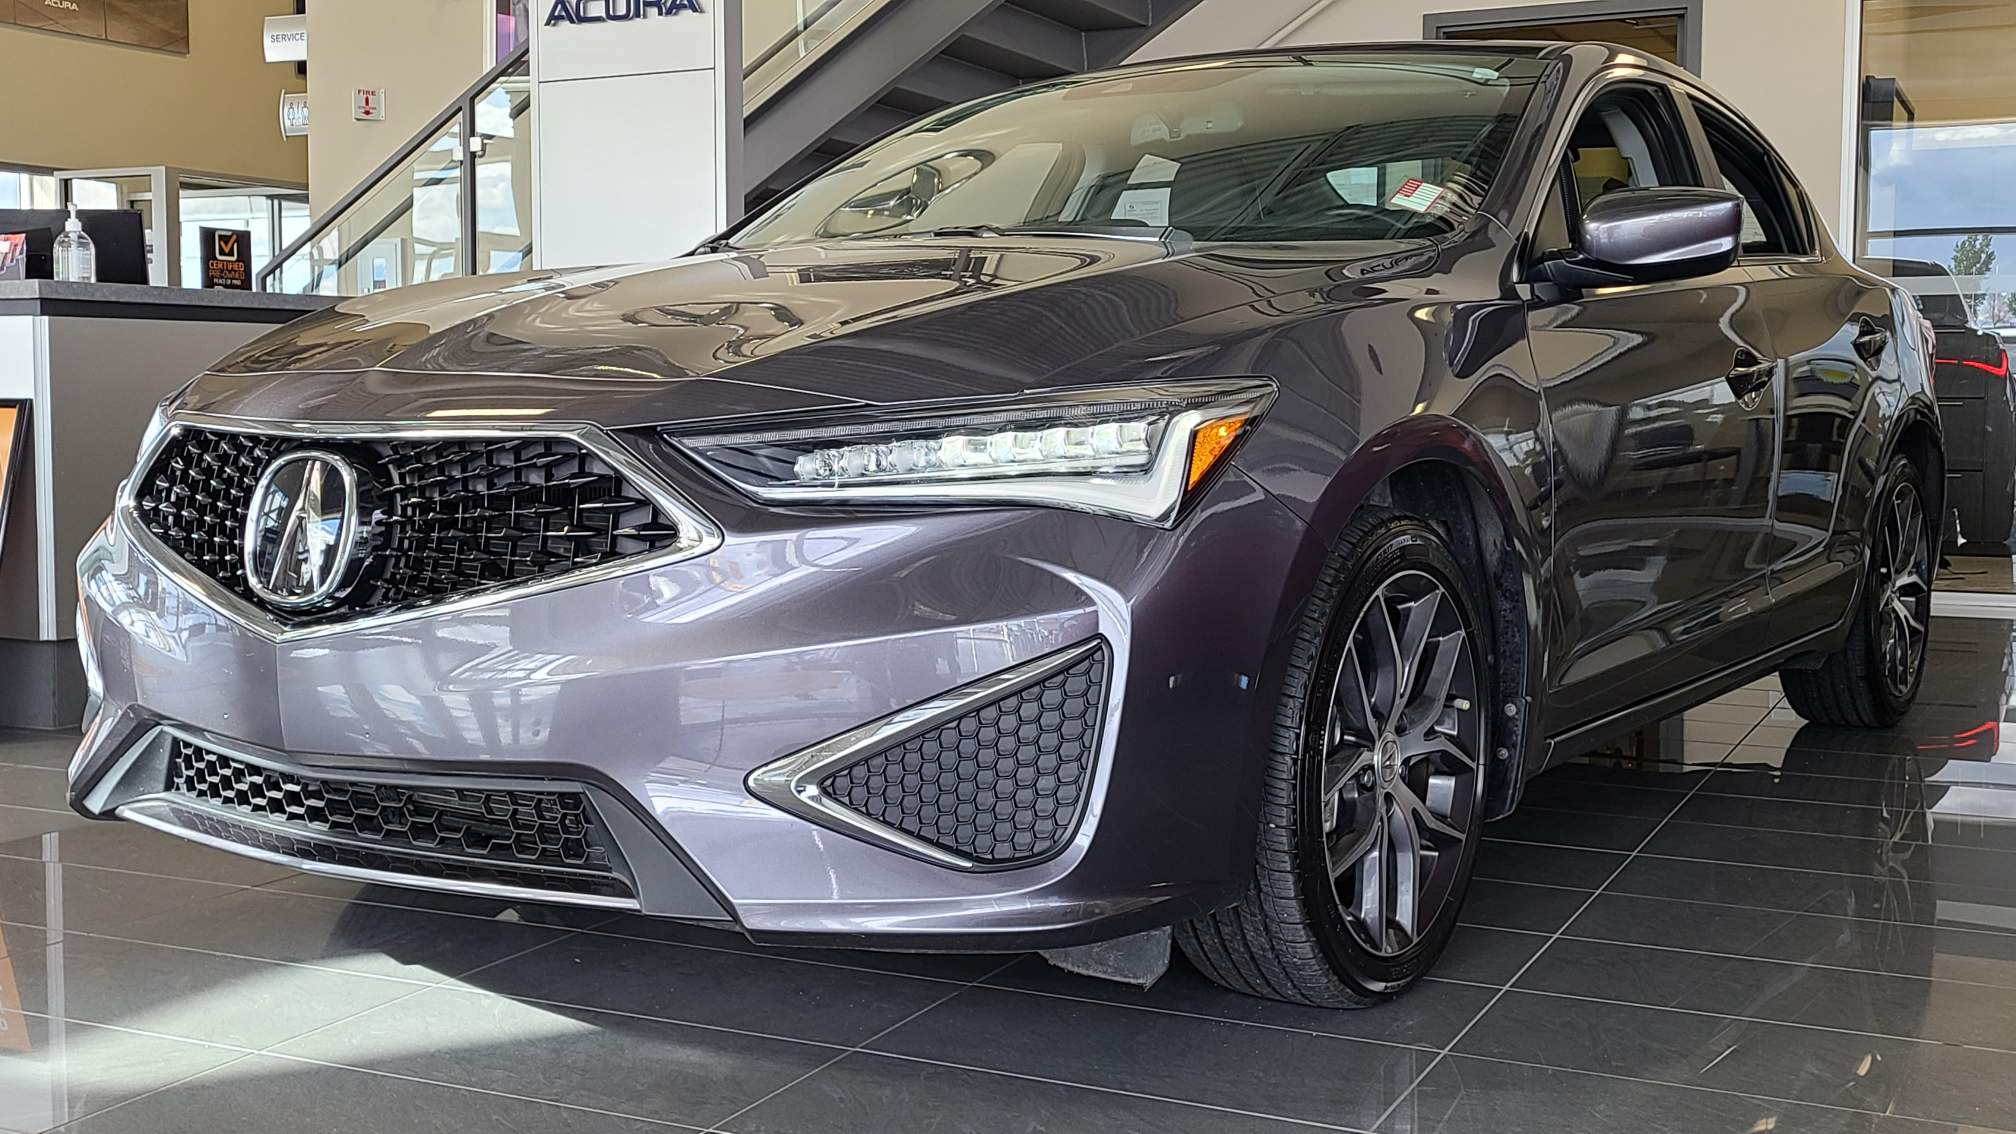 used 2020 Acura ILX car, priced at $30,037